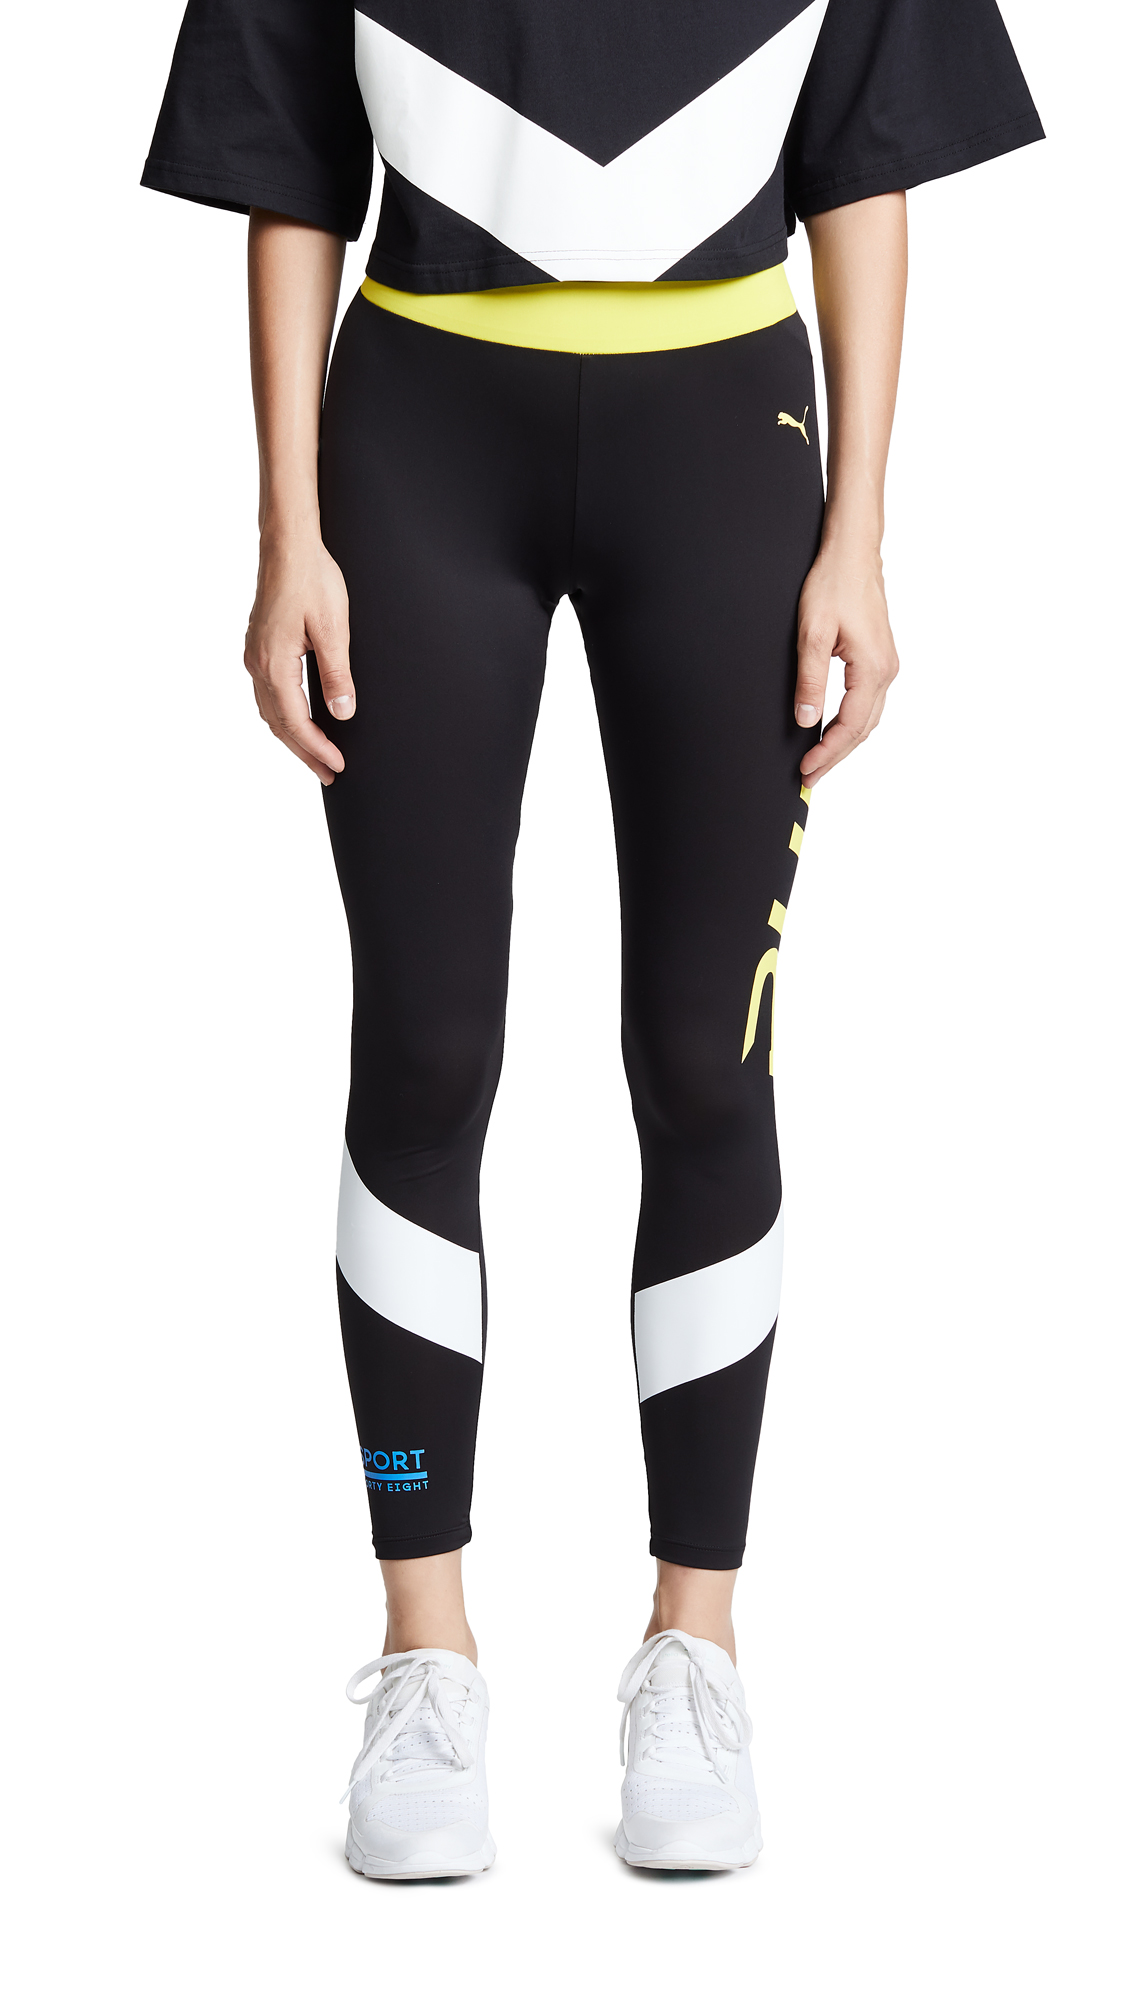 X-TREME LEGGINGS